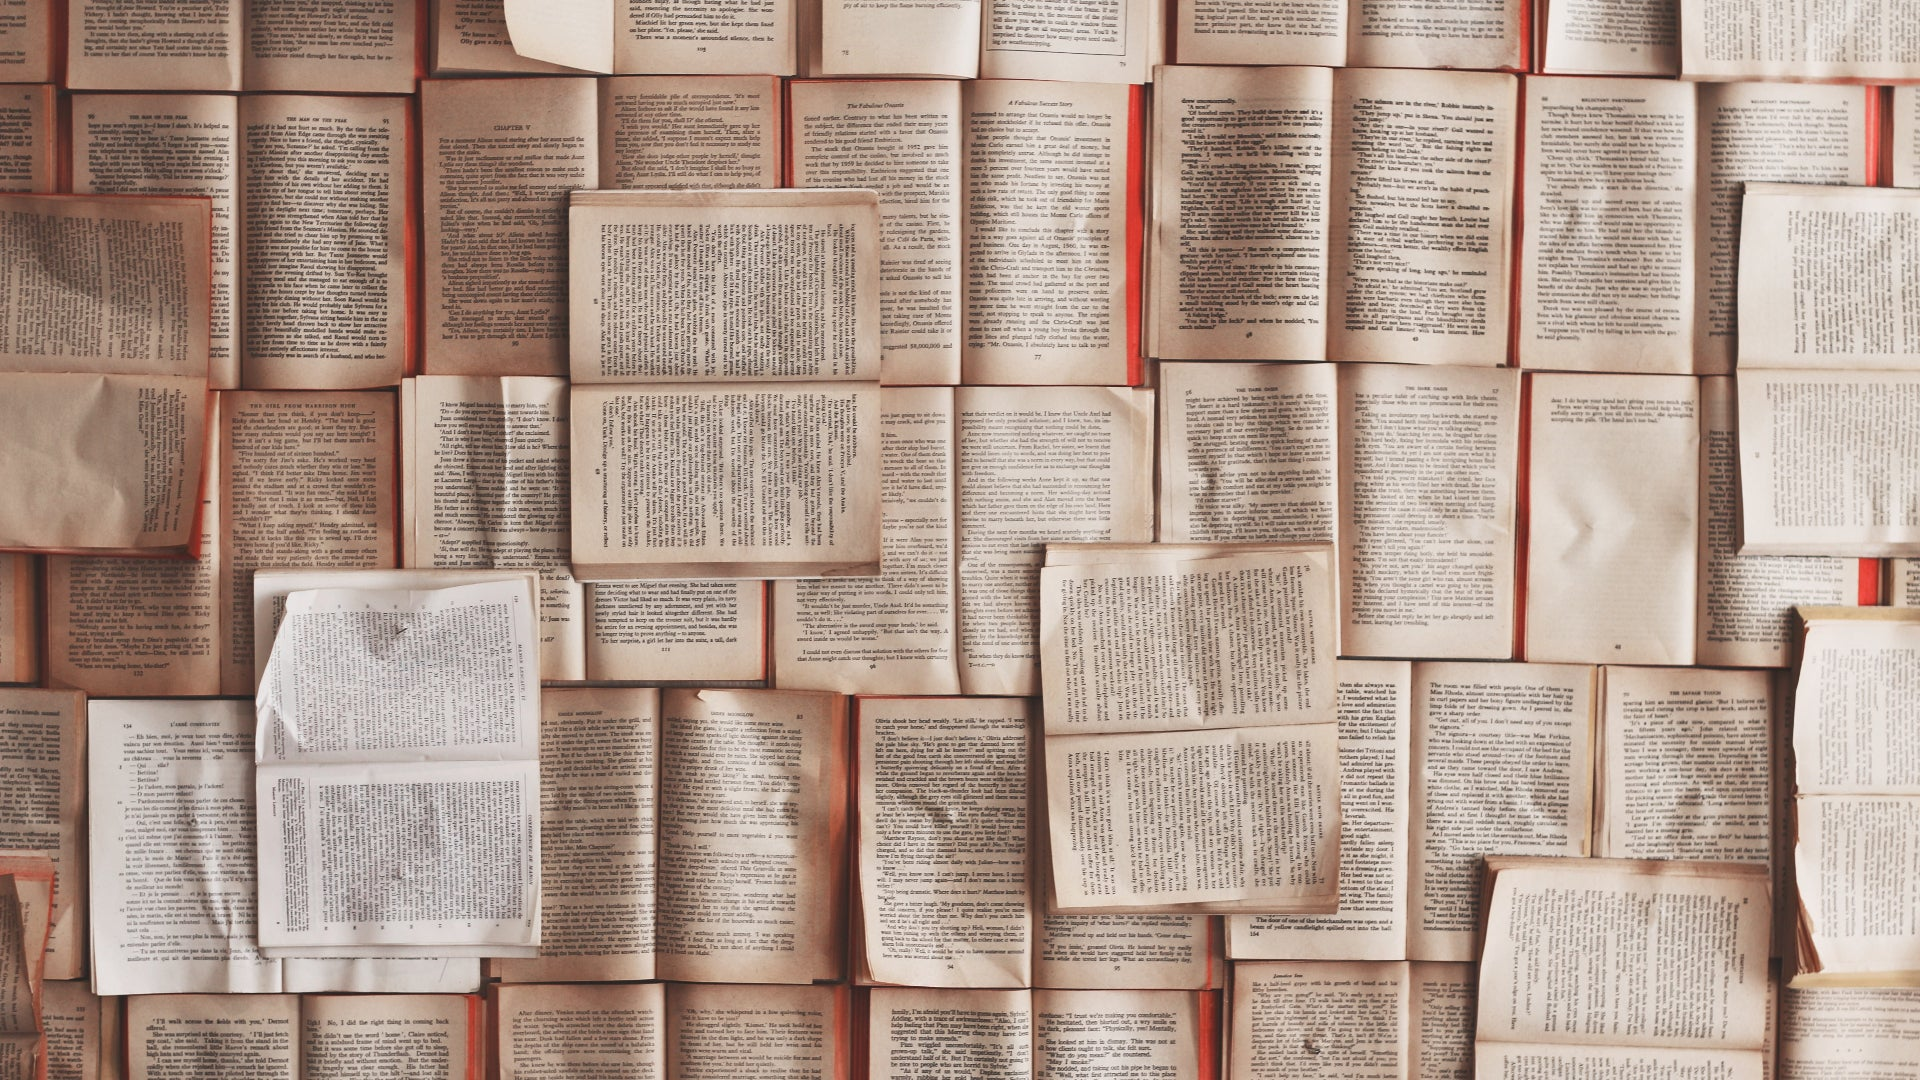 The whole picture frame is full of books, arranged in a rough grid and laid open with their pages overlapping one another